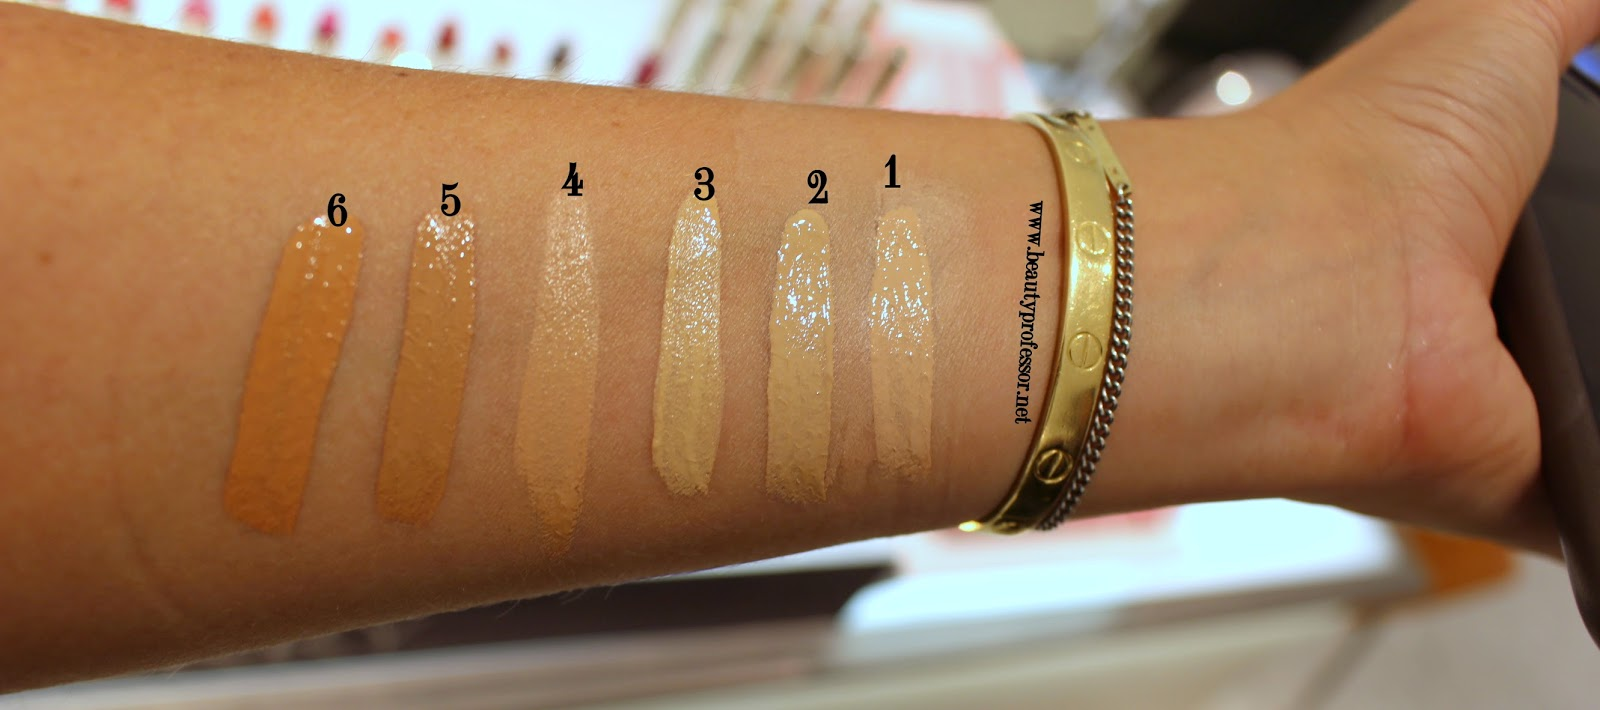 by terry terrybly densiliss concealer swatches